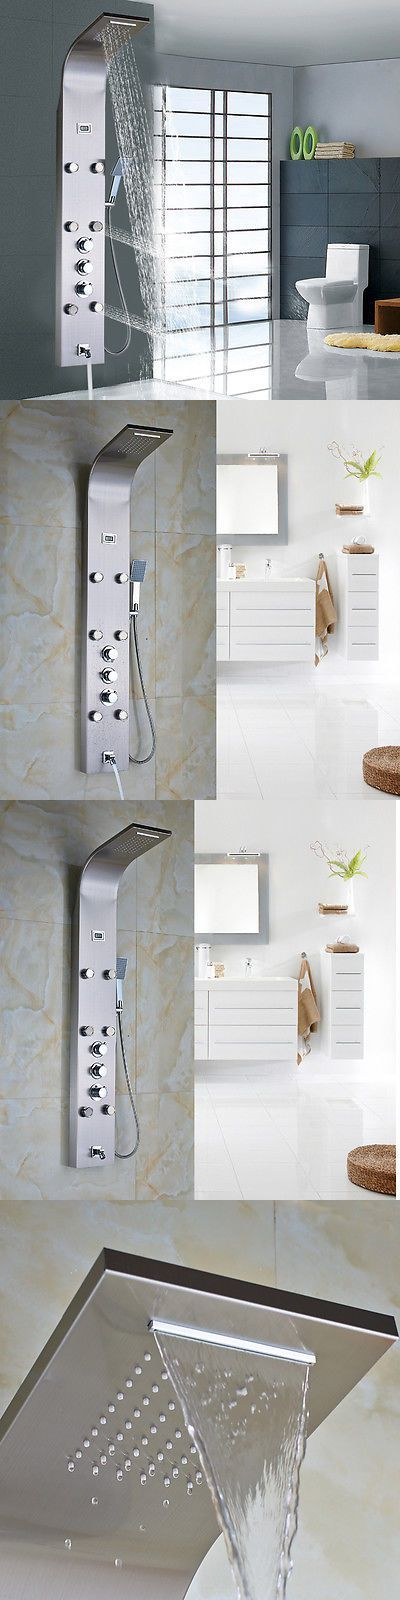 Shower Panels And Massagers 121849: Thermostatic Rainfall Nickel Brushed  Shower Panel 3 Handles Mixer W